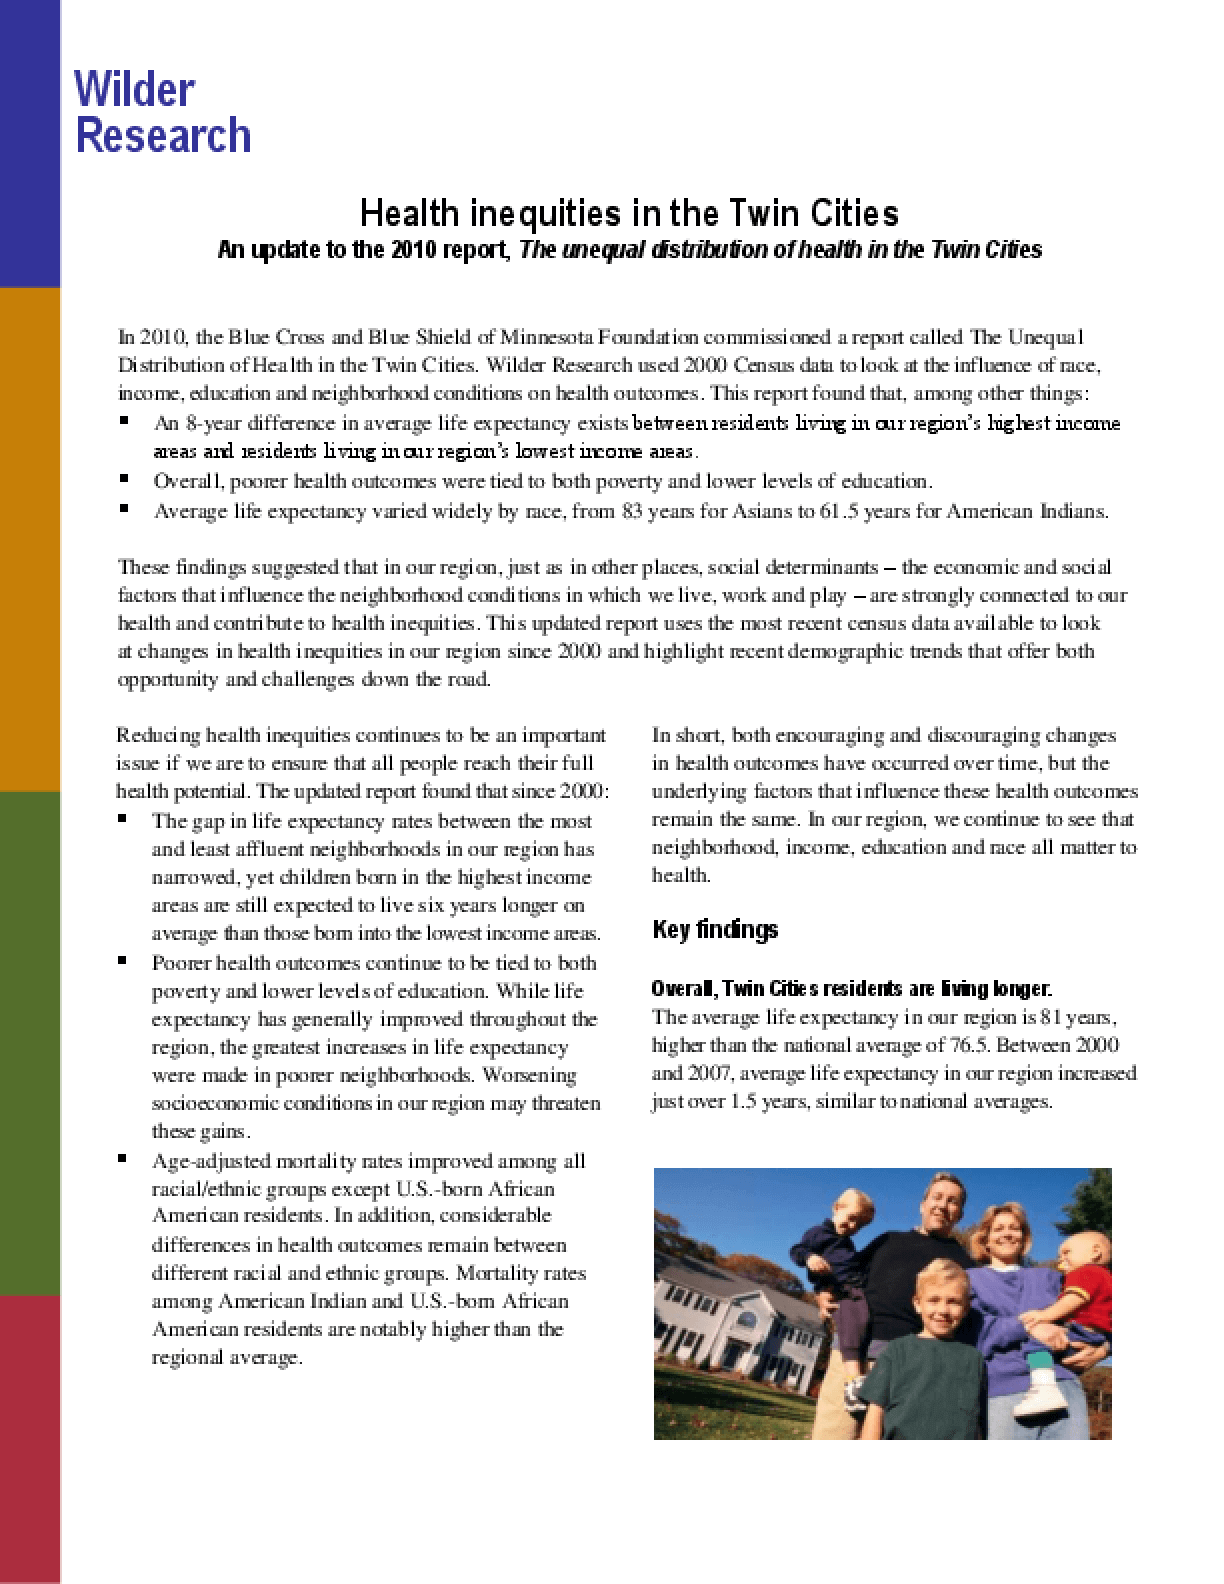 Health Inequities in the Twin Cities